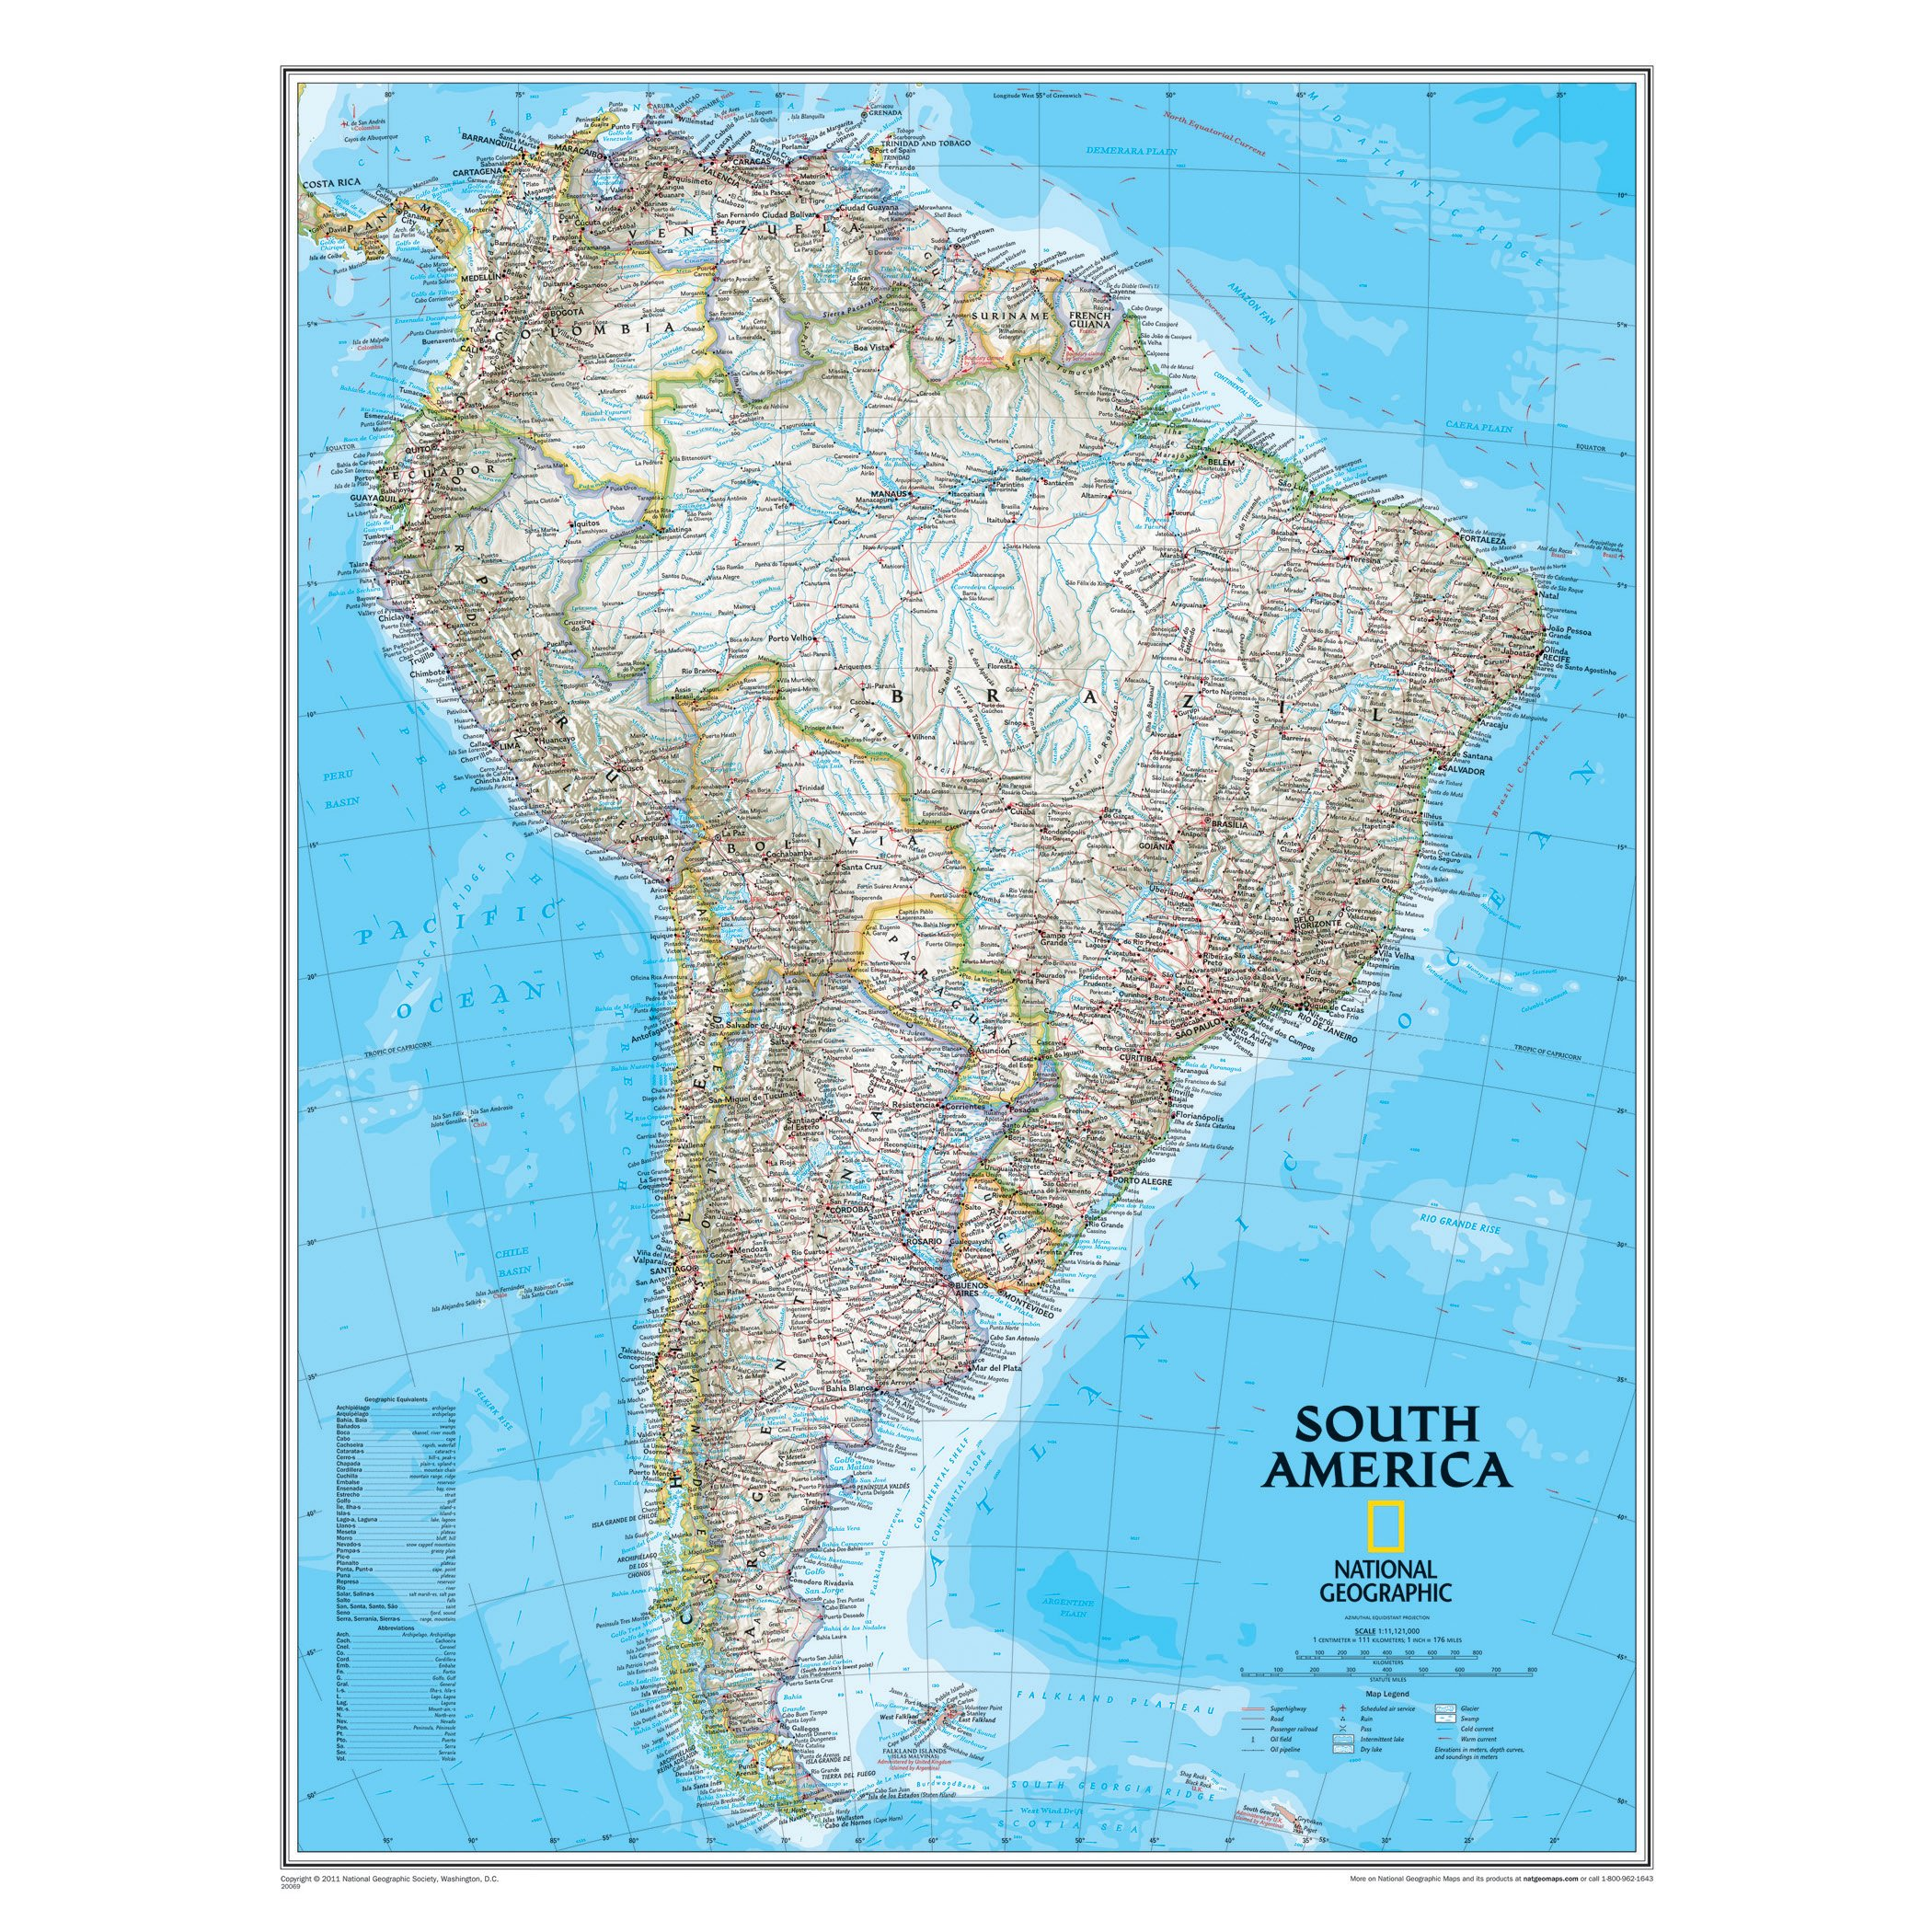 Cape Horn On South America Map.South America Classic Laminated National Geographic Maps